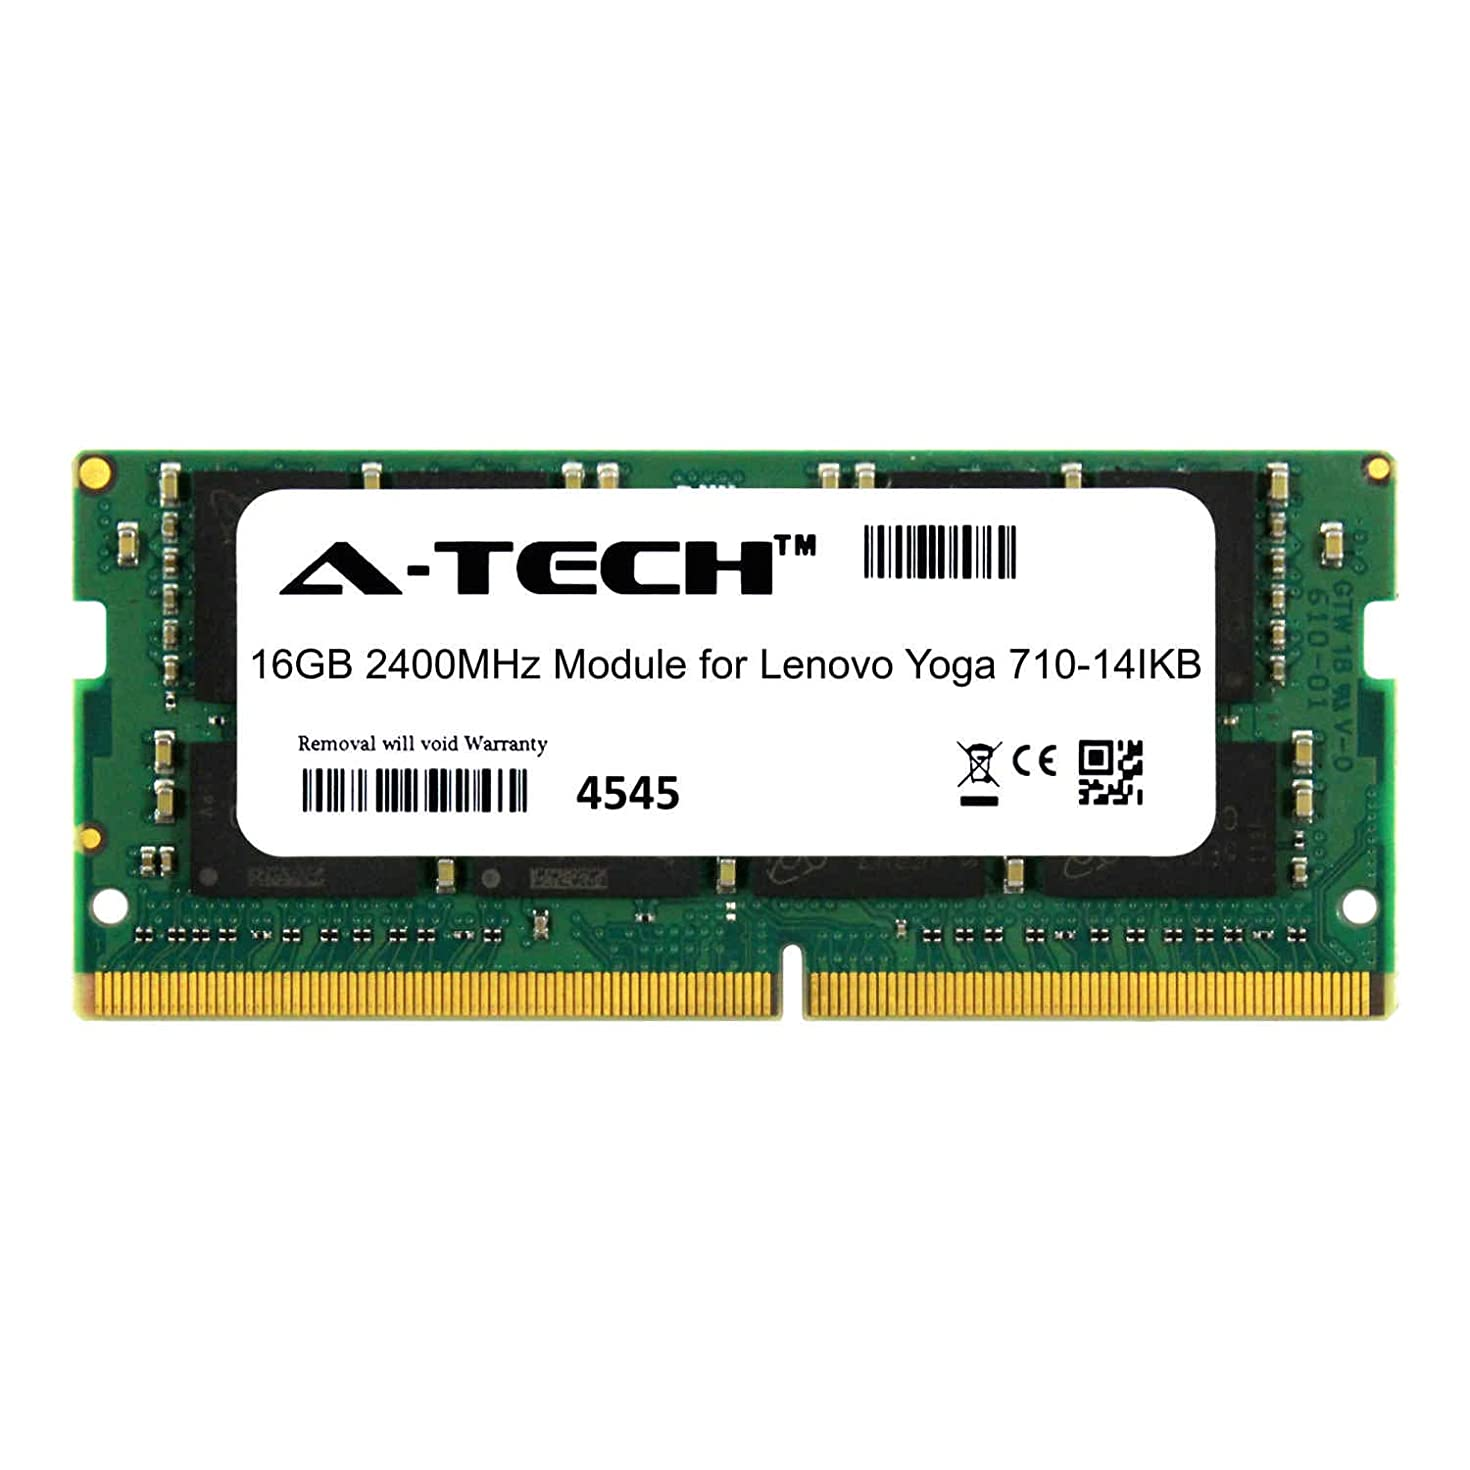 A-Tech 16GB Module for Lenovo Yoga 710-14IKB Laptop & Notebook Compatible DDR4 2400Mhz Memory Ram (ATMS360930A25831X1)